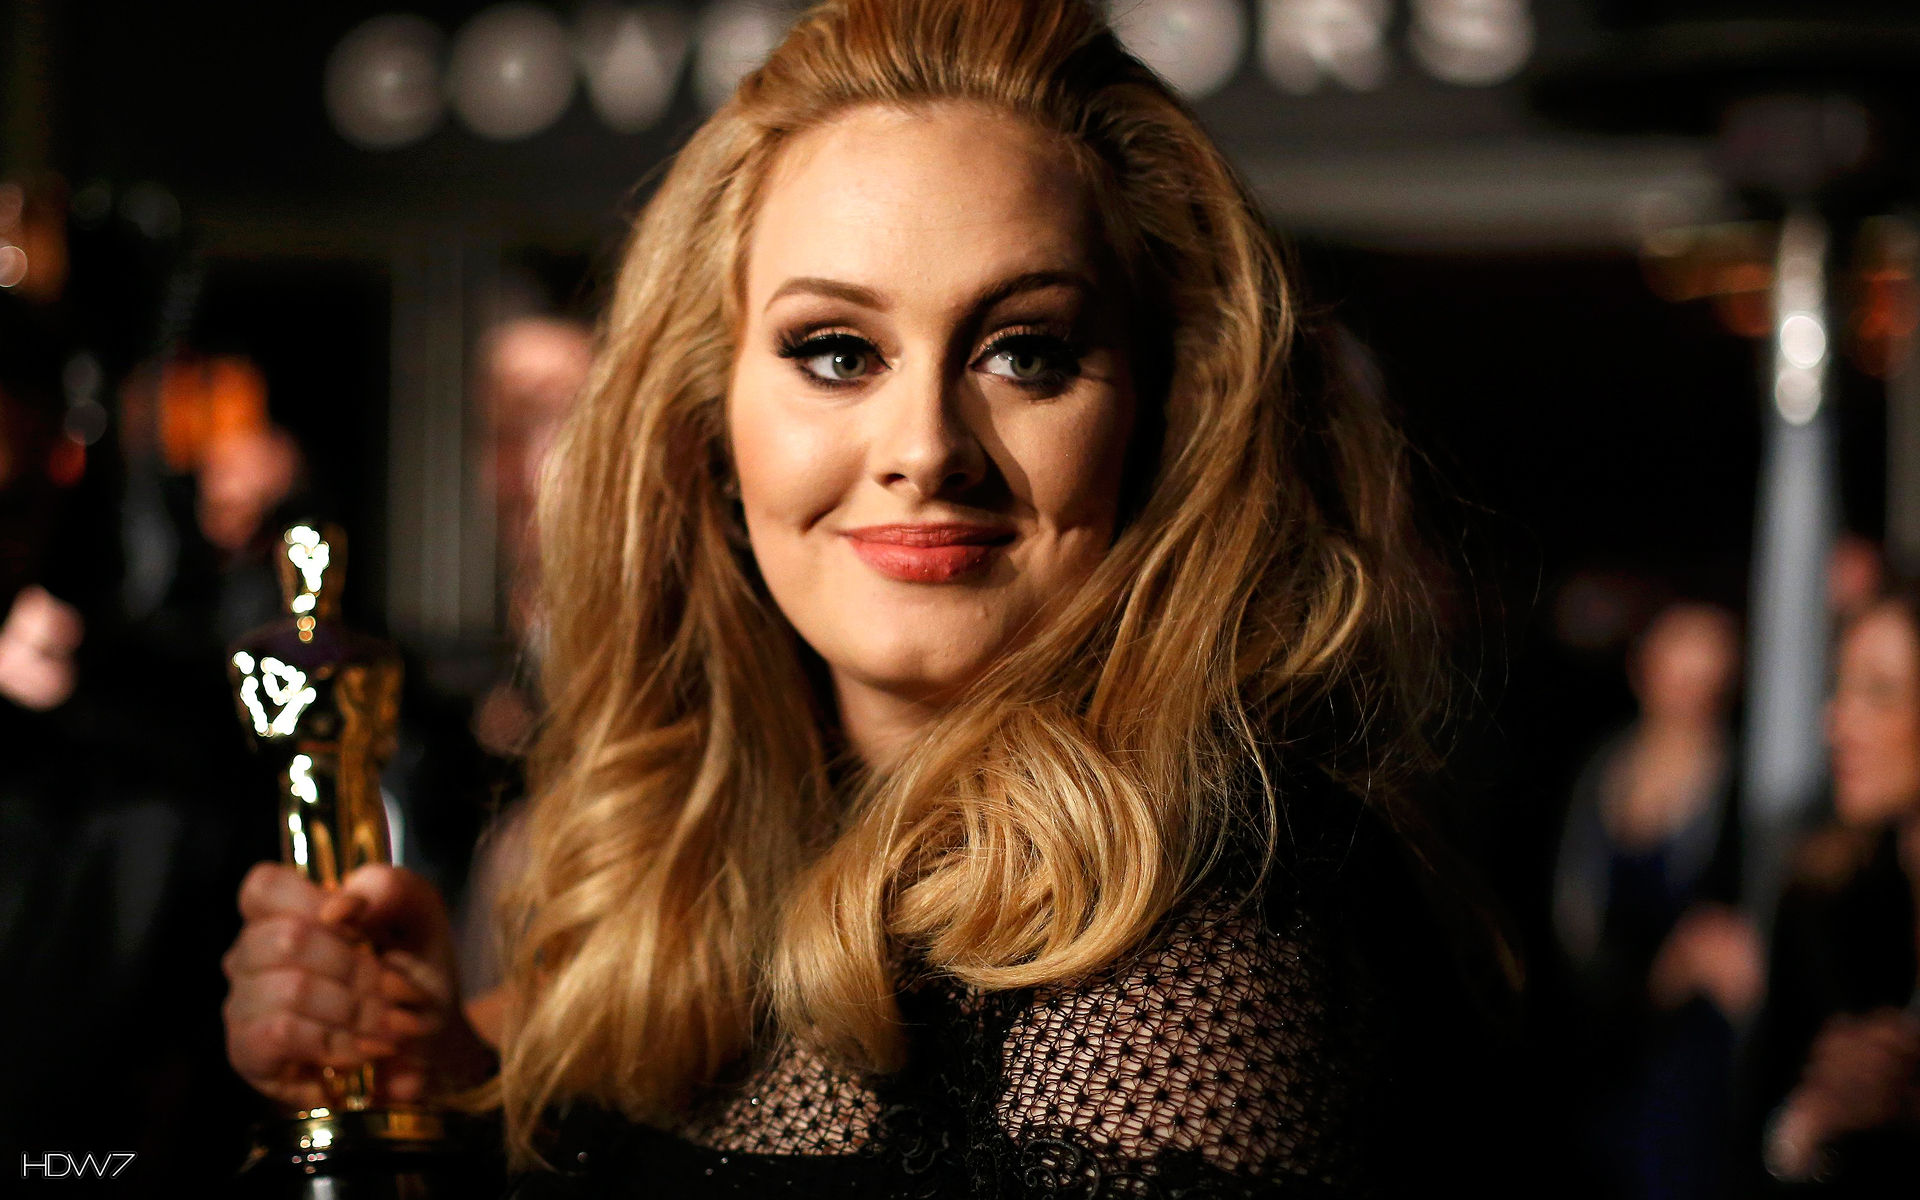 adele singer wallpaper